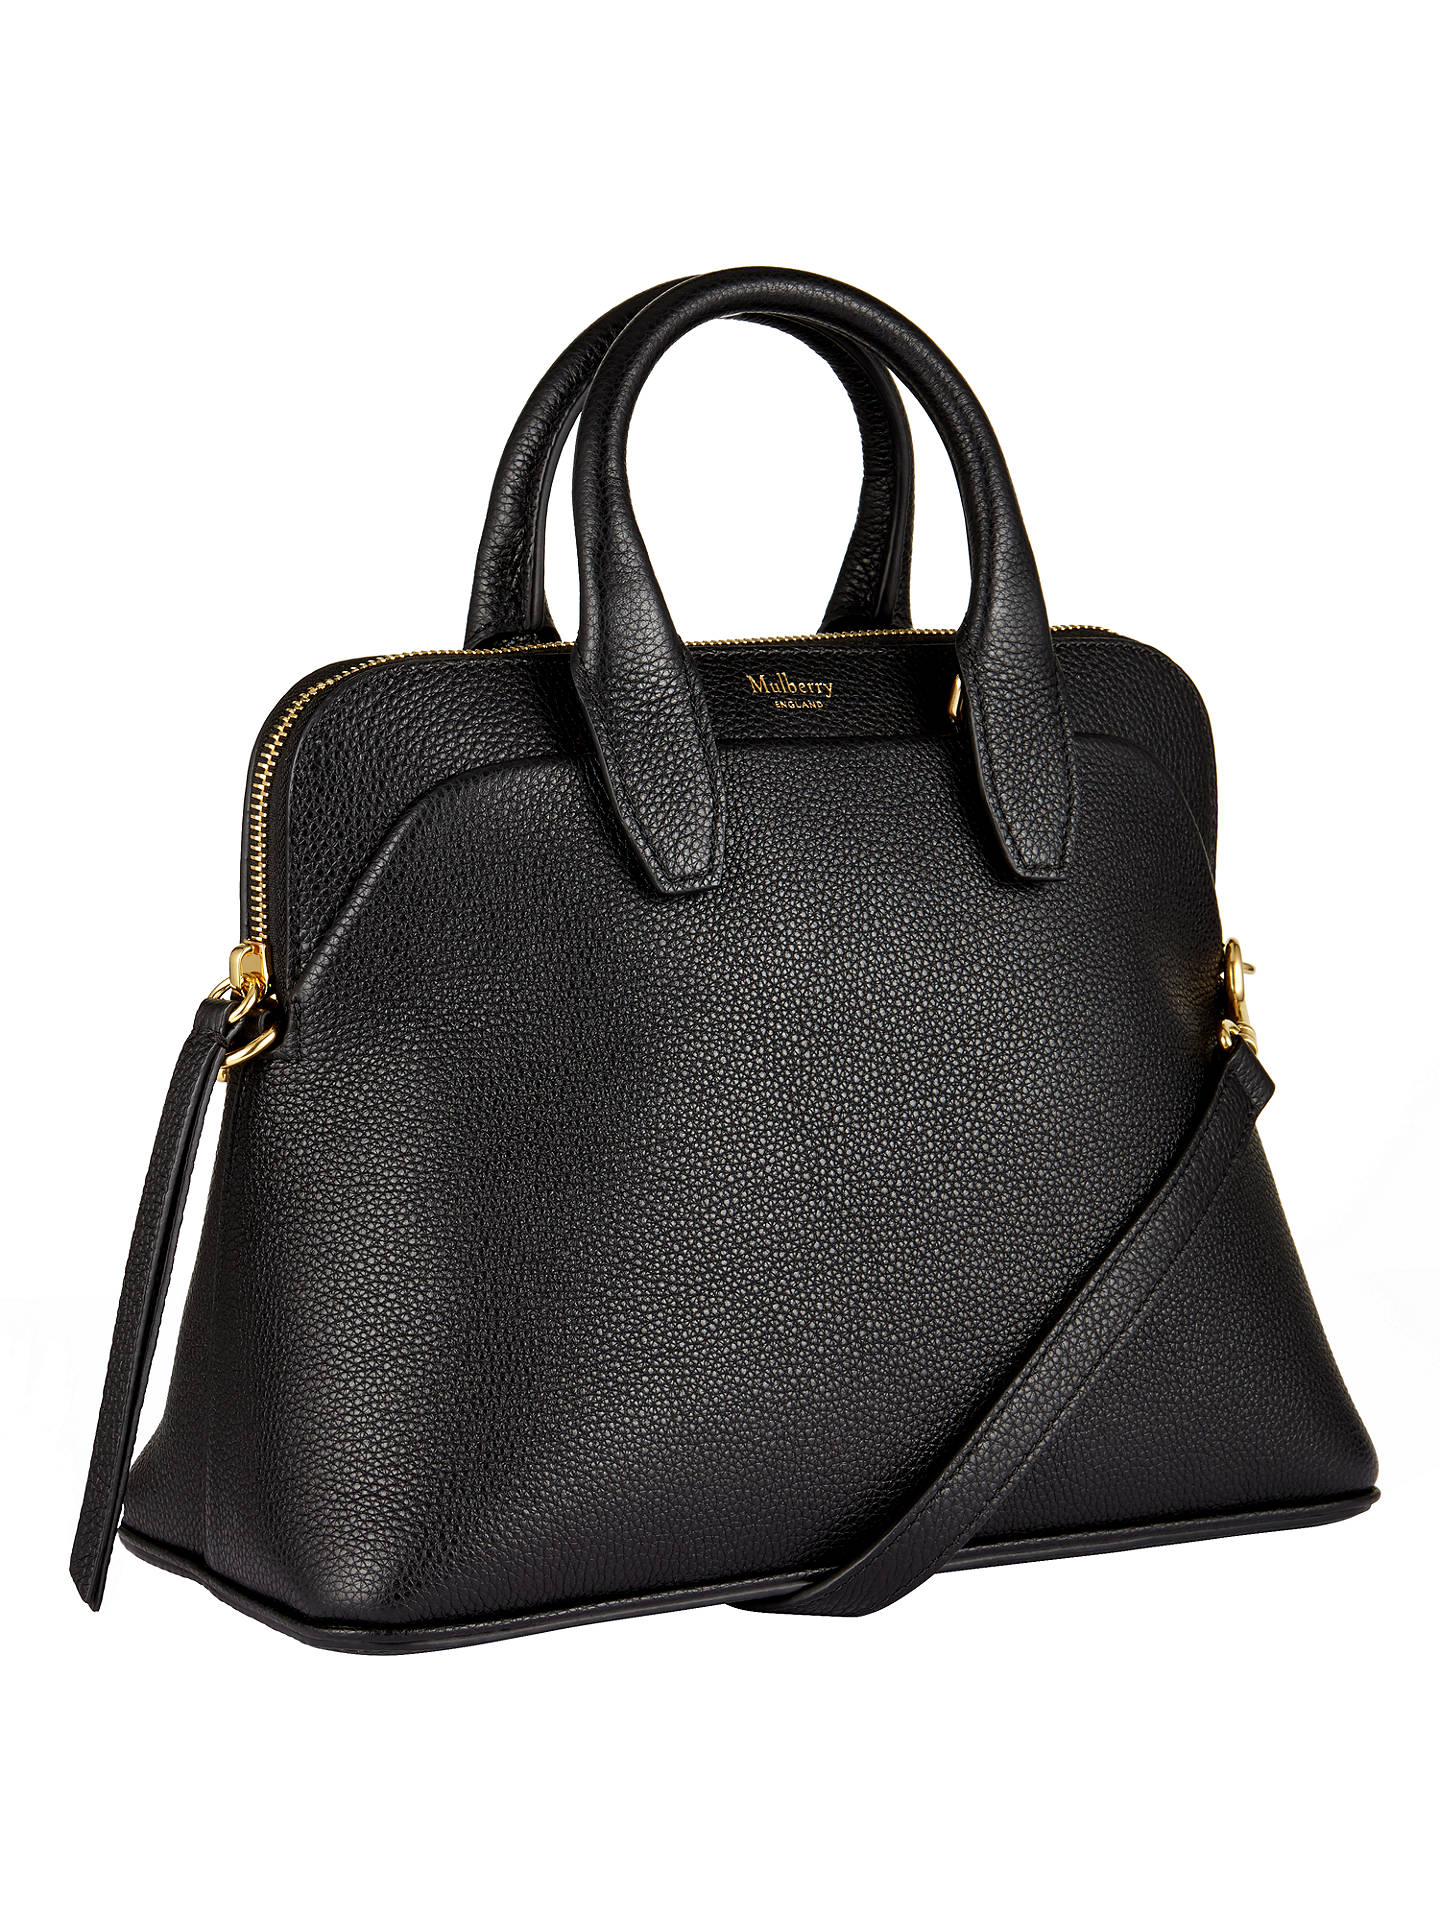 ... BuyMulberry Colville Small Leather Tote Bag, Black Online at  johnlewis.com 6e70dd46f5